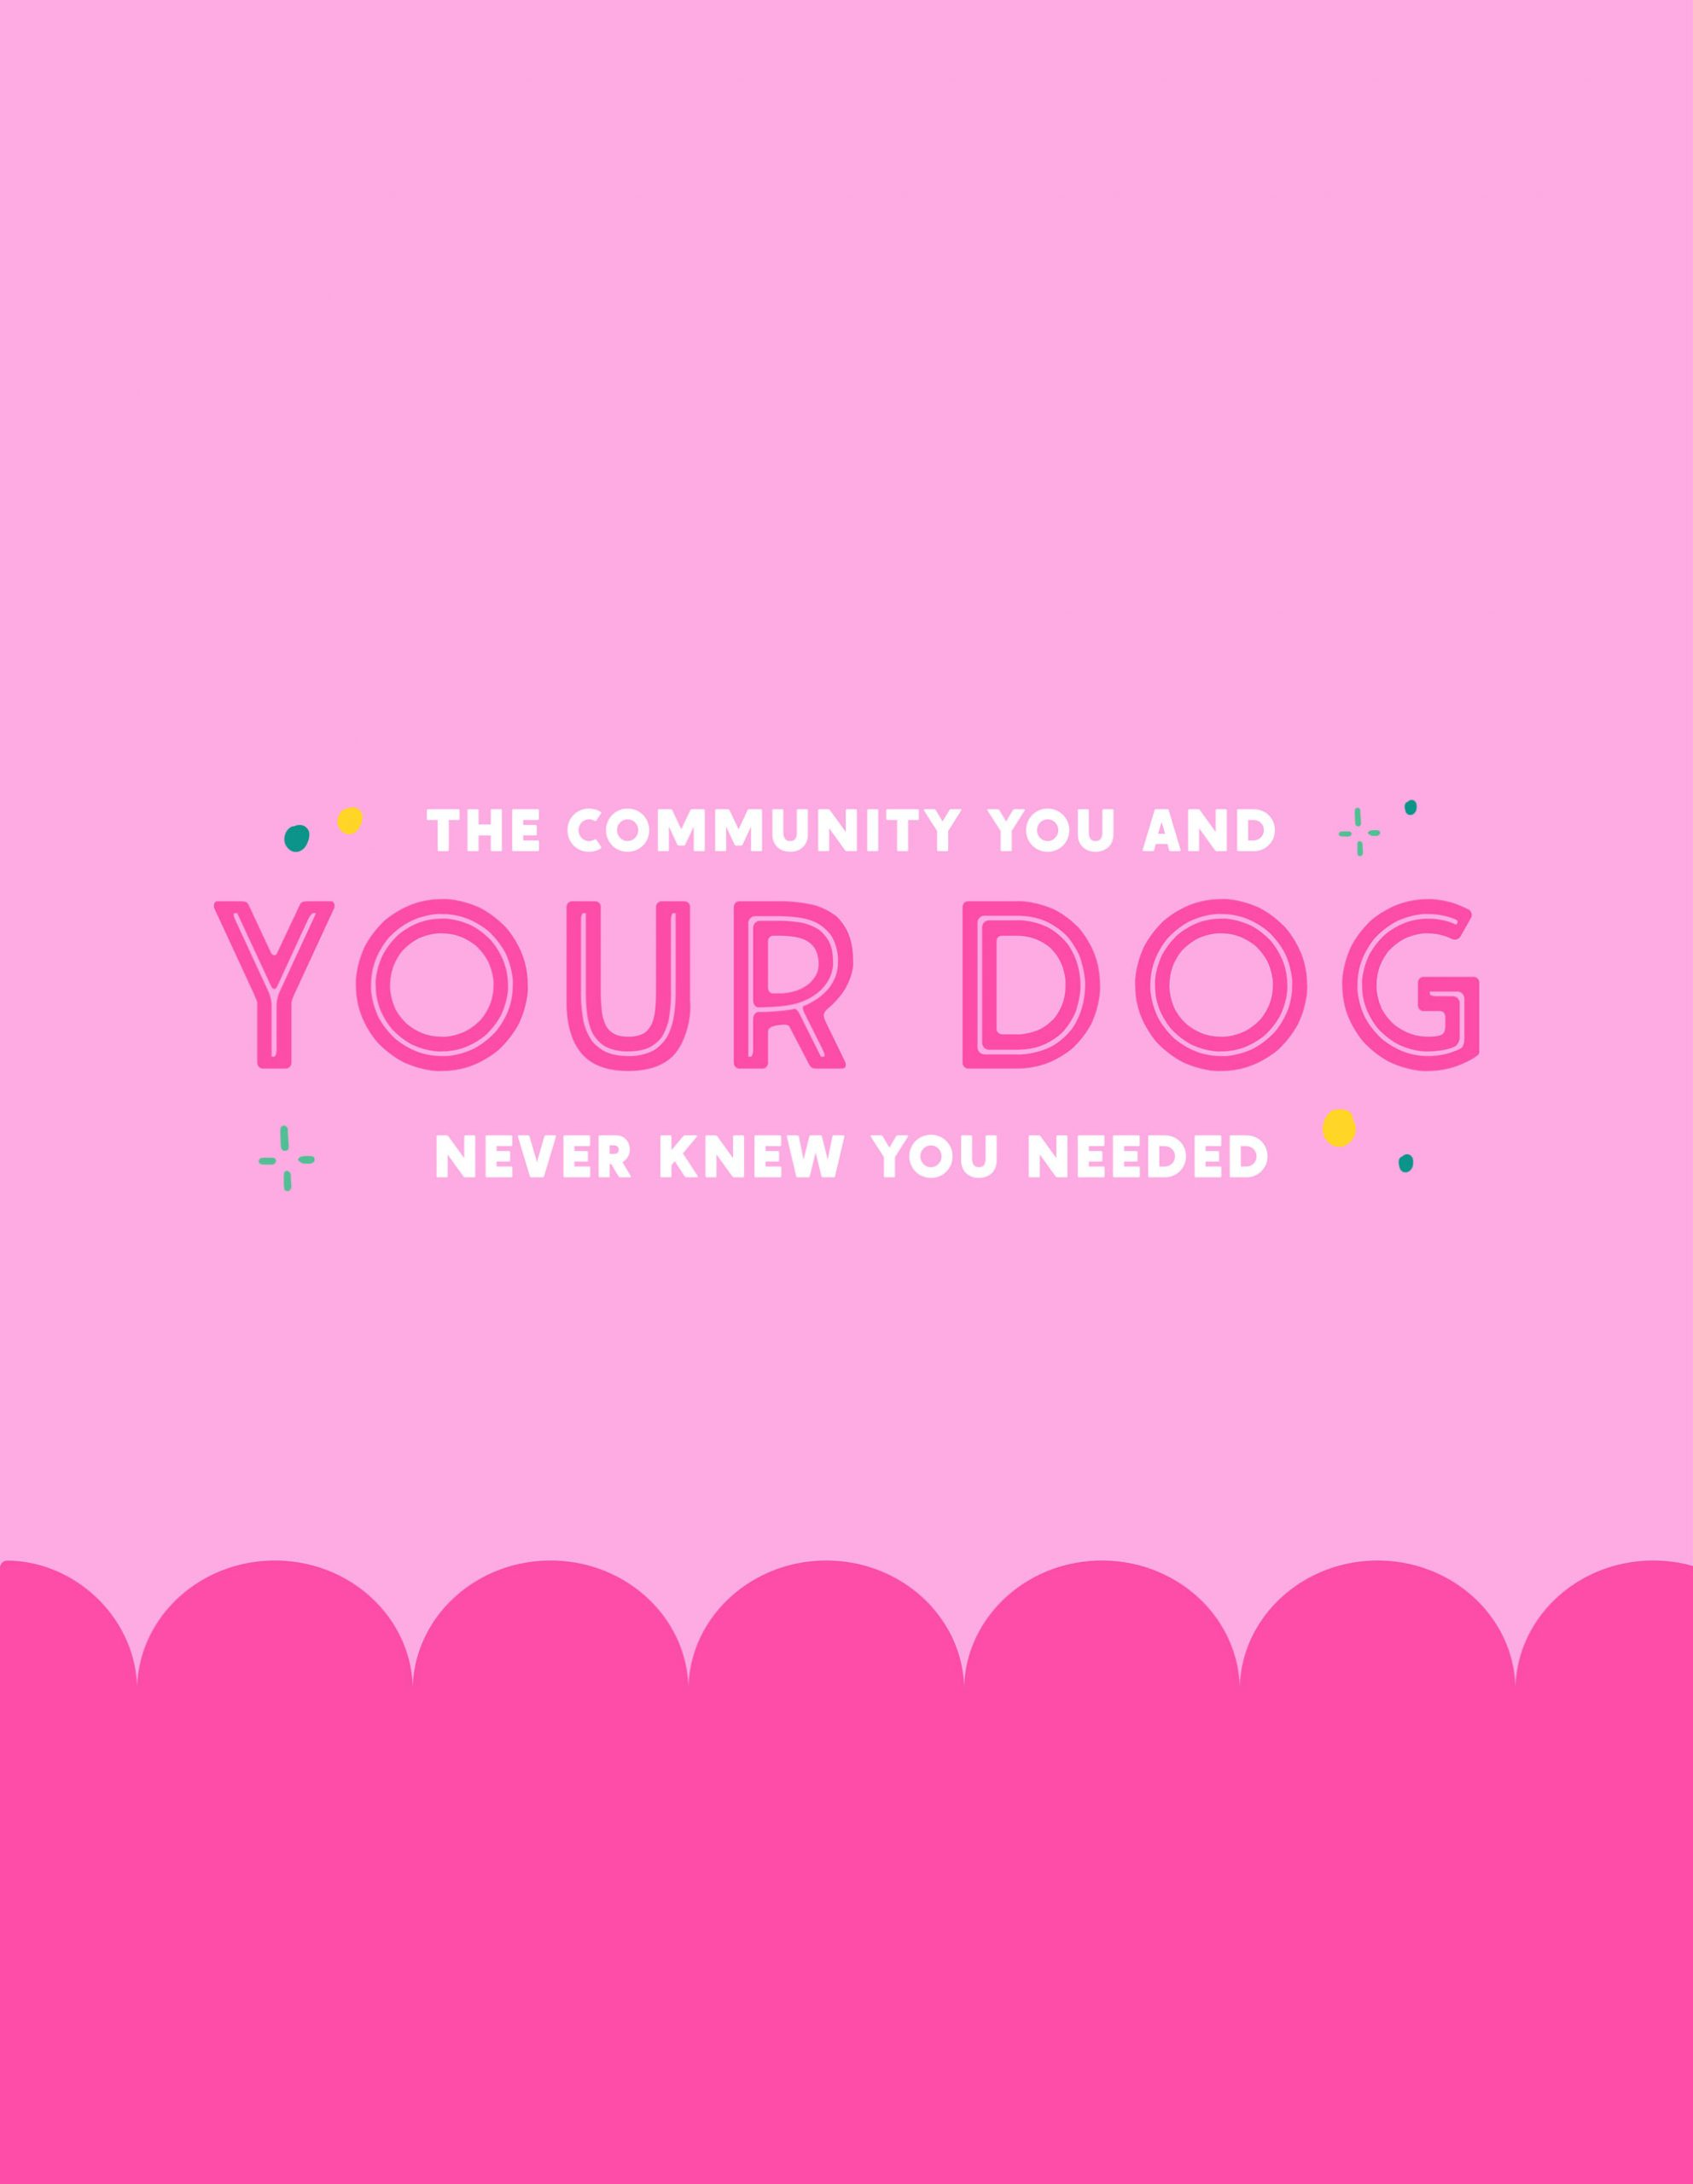 The Community You and Your Dog Never Knew You Needed